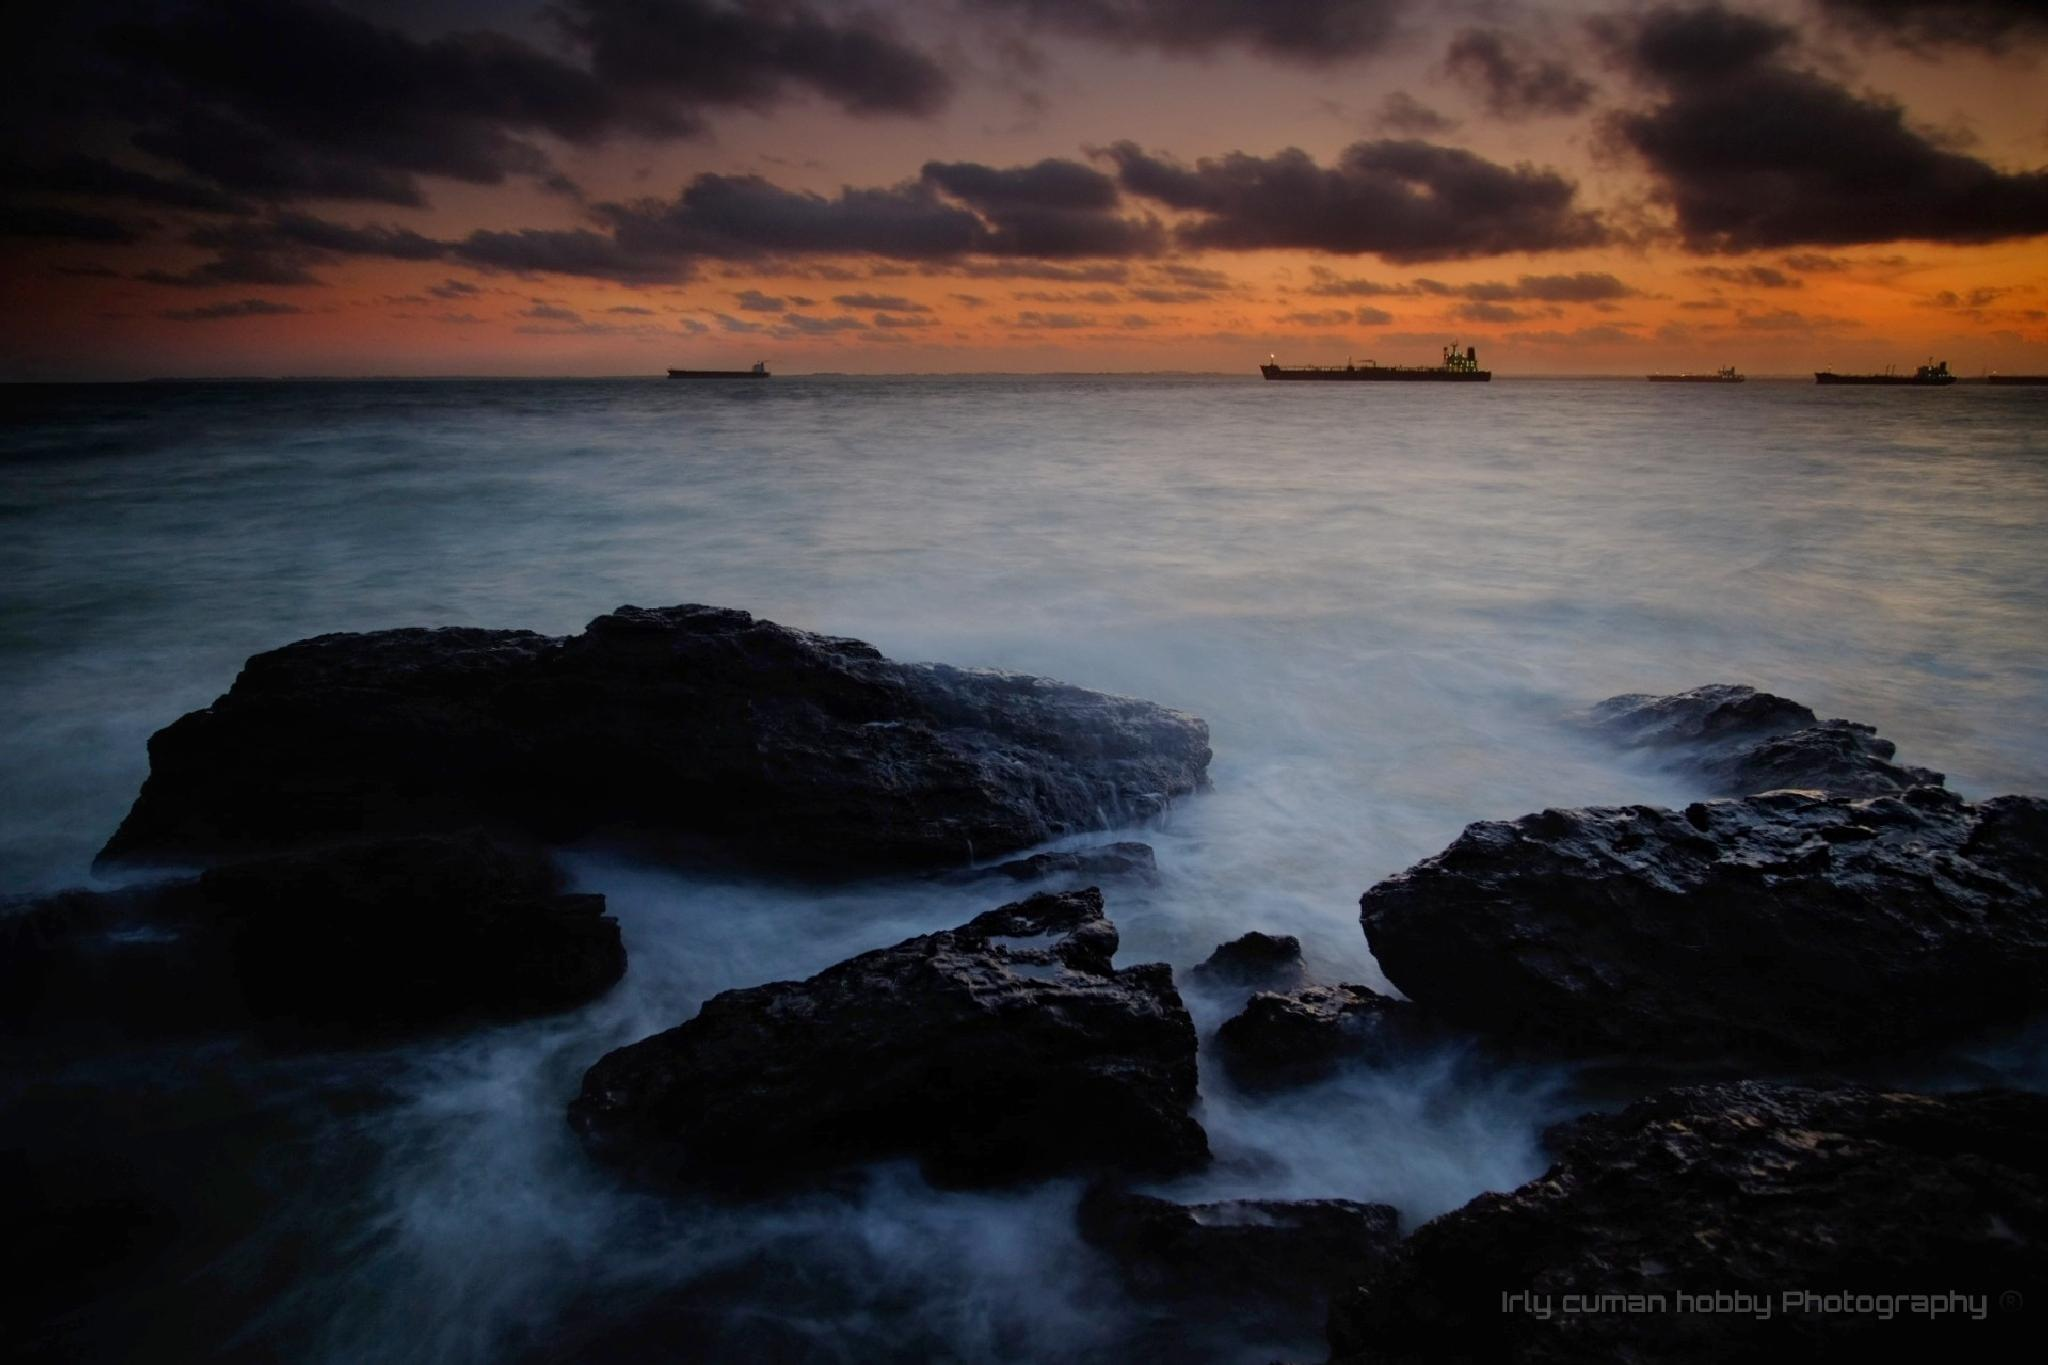 Untitled by Irli